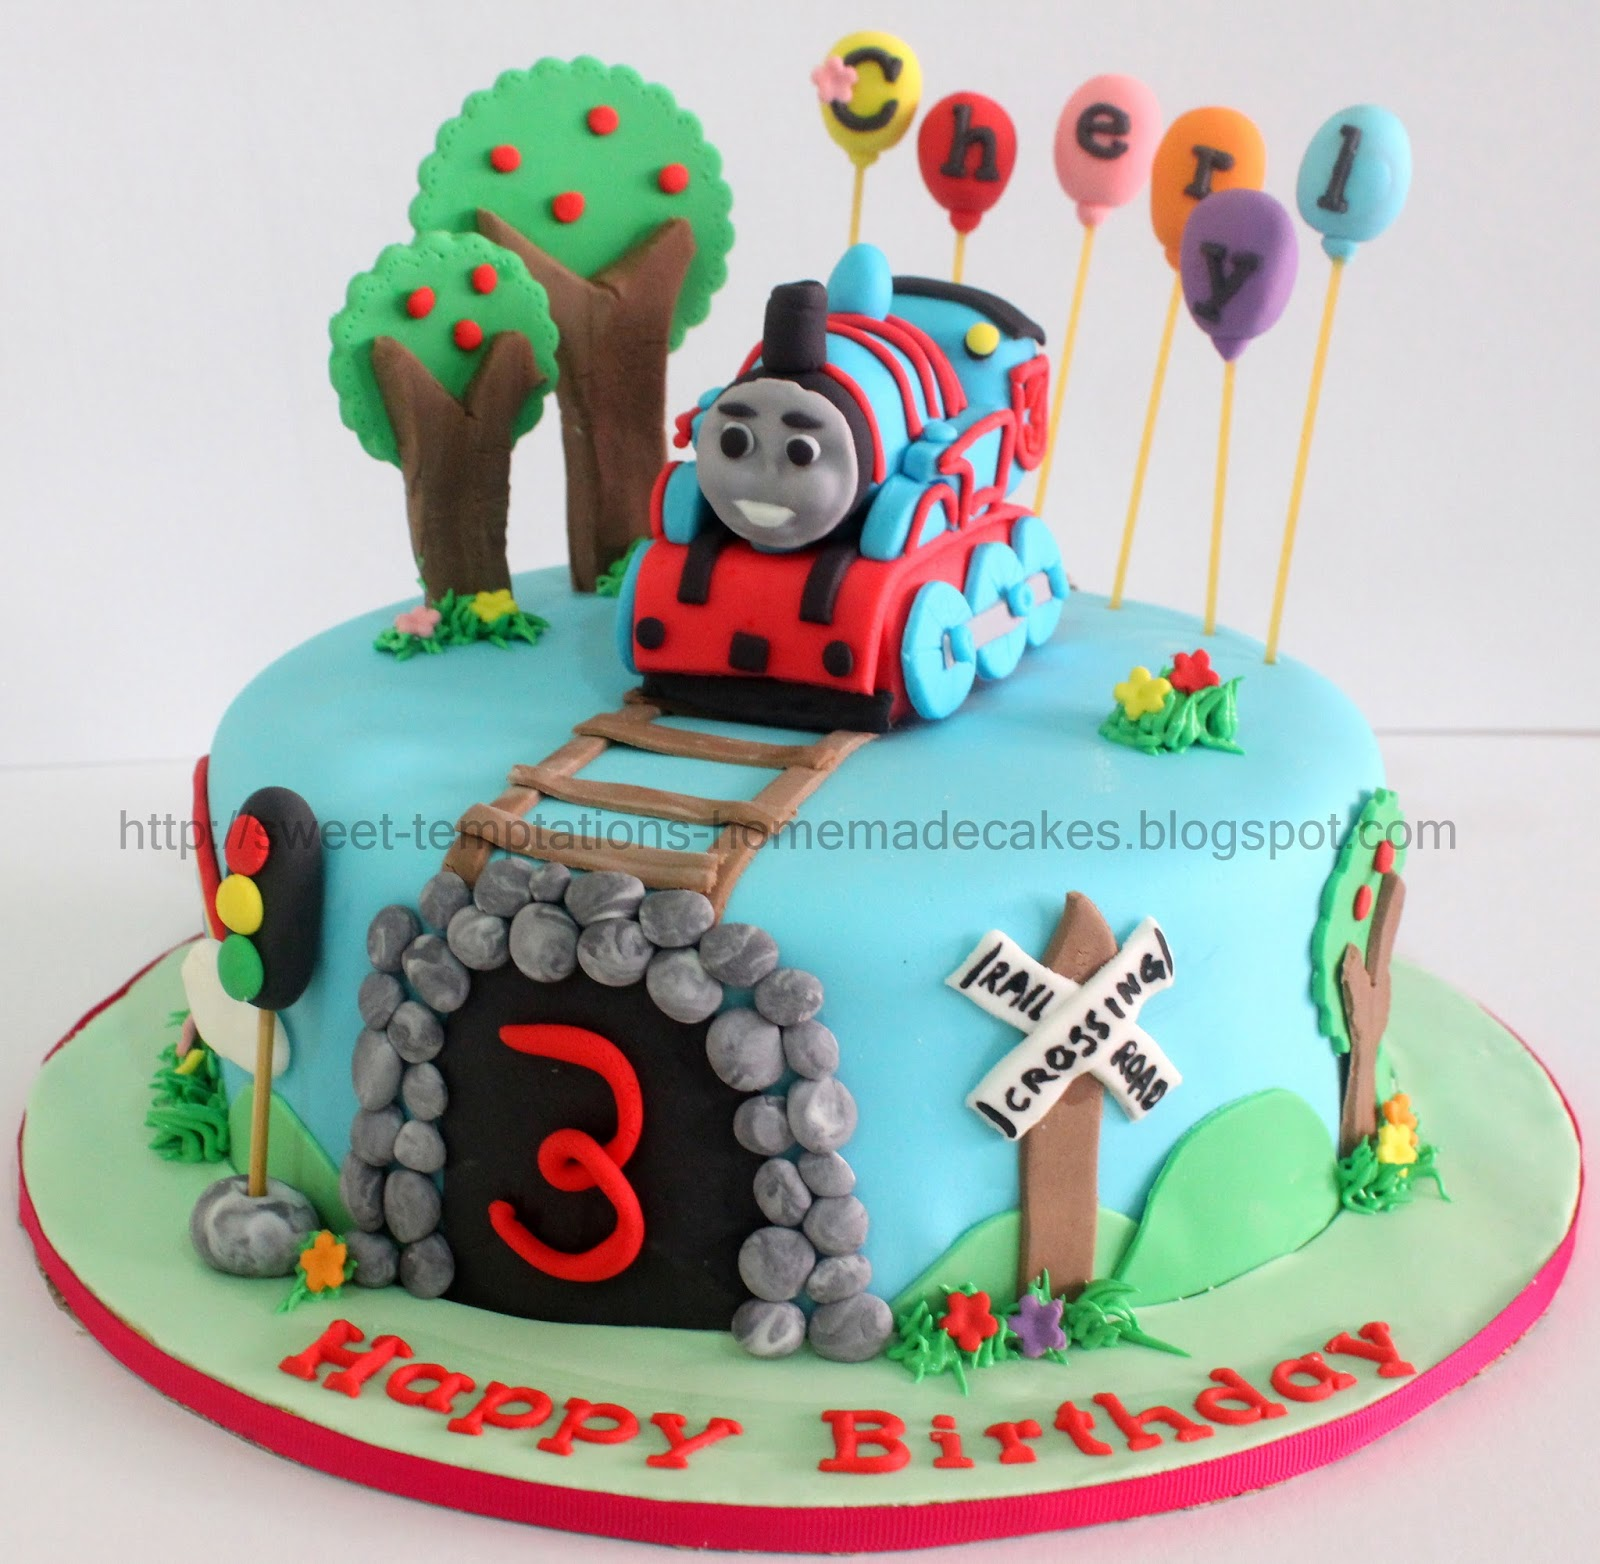 Sweet Temptations Homemade Cakes Amp Pastry Thomas Train Cake